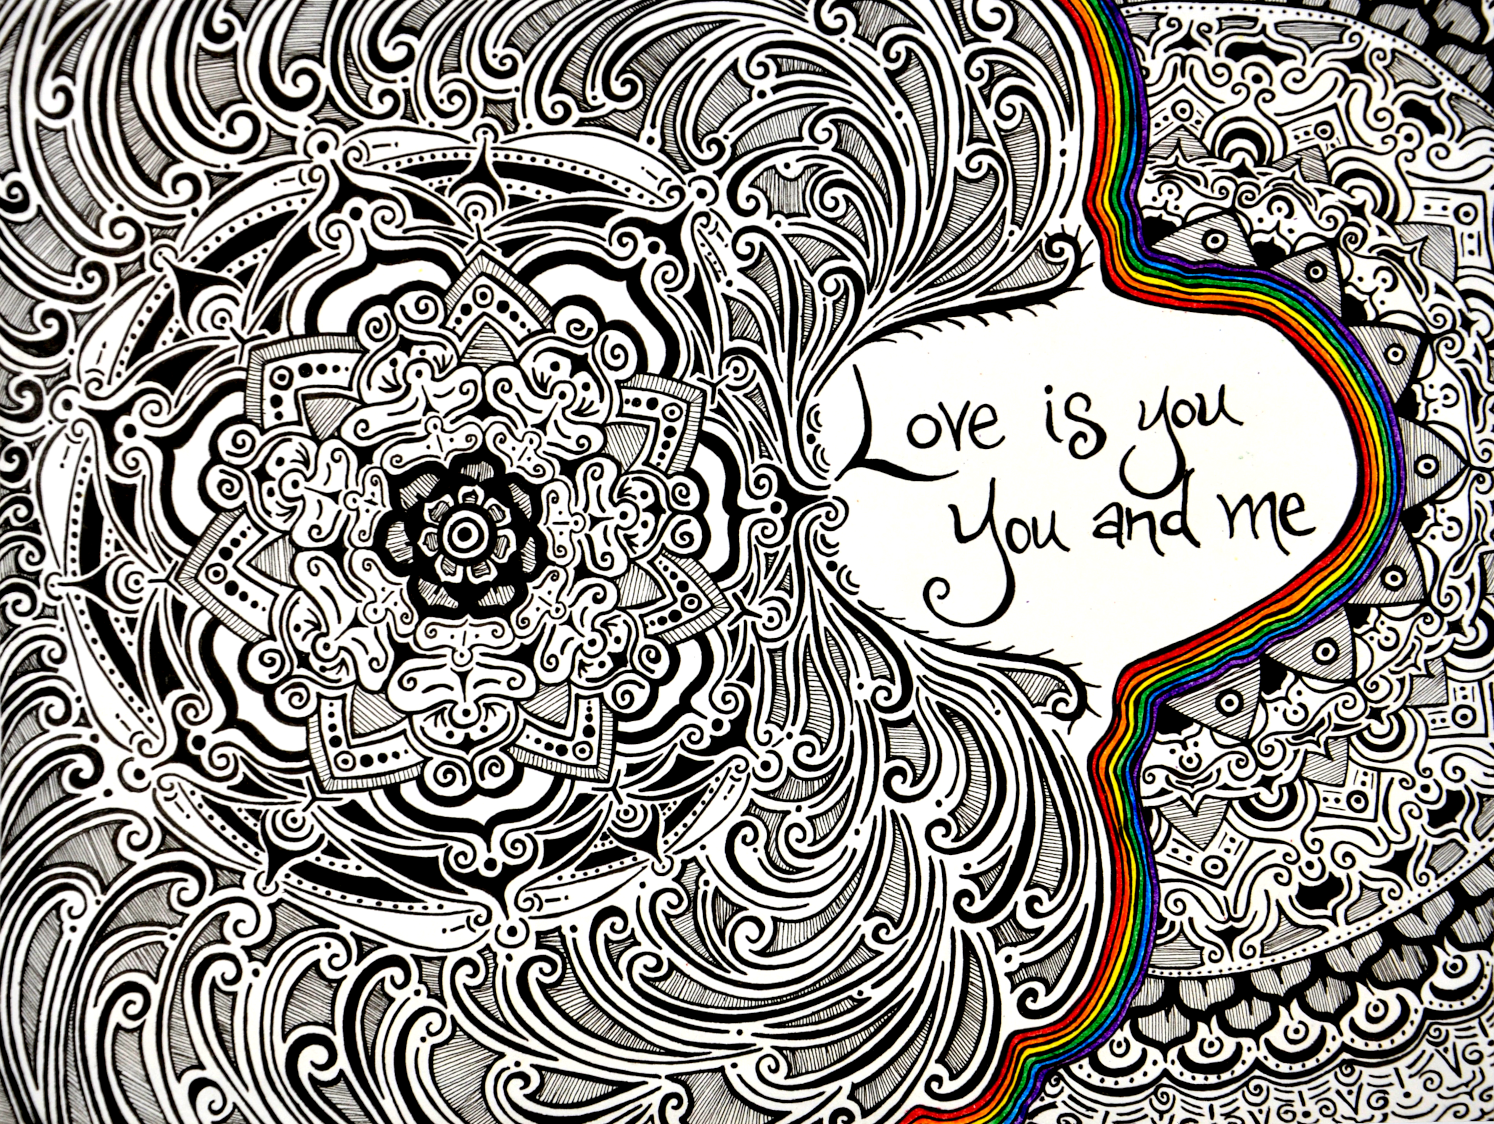 Love Is You flower drawing, by Tara Marolf